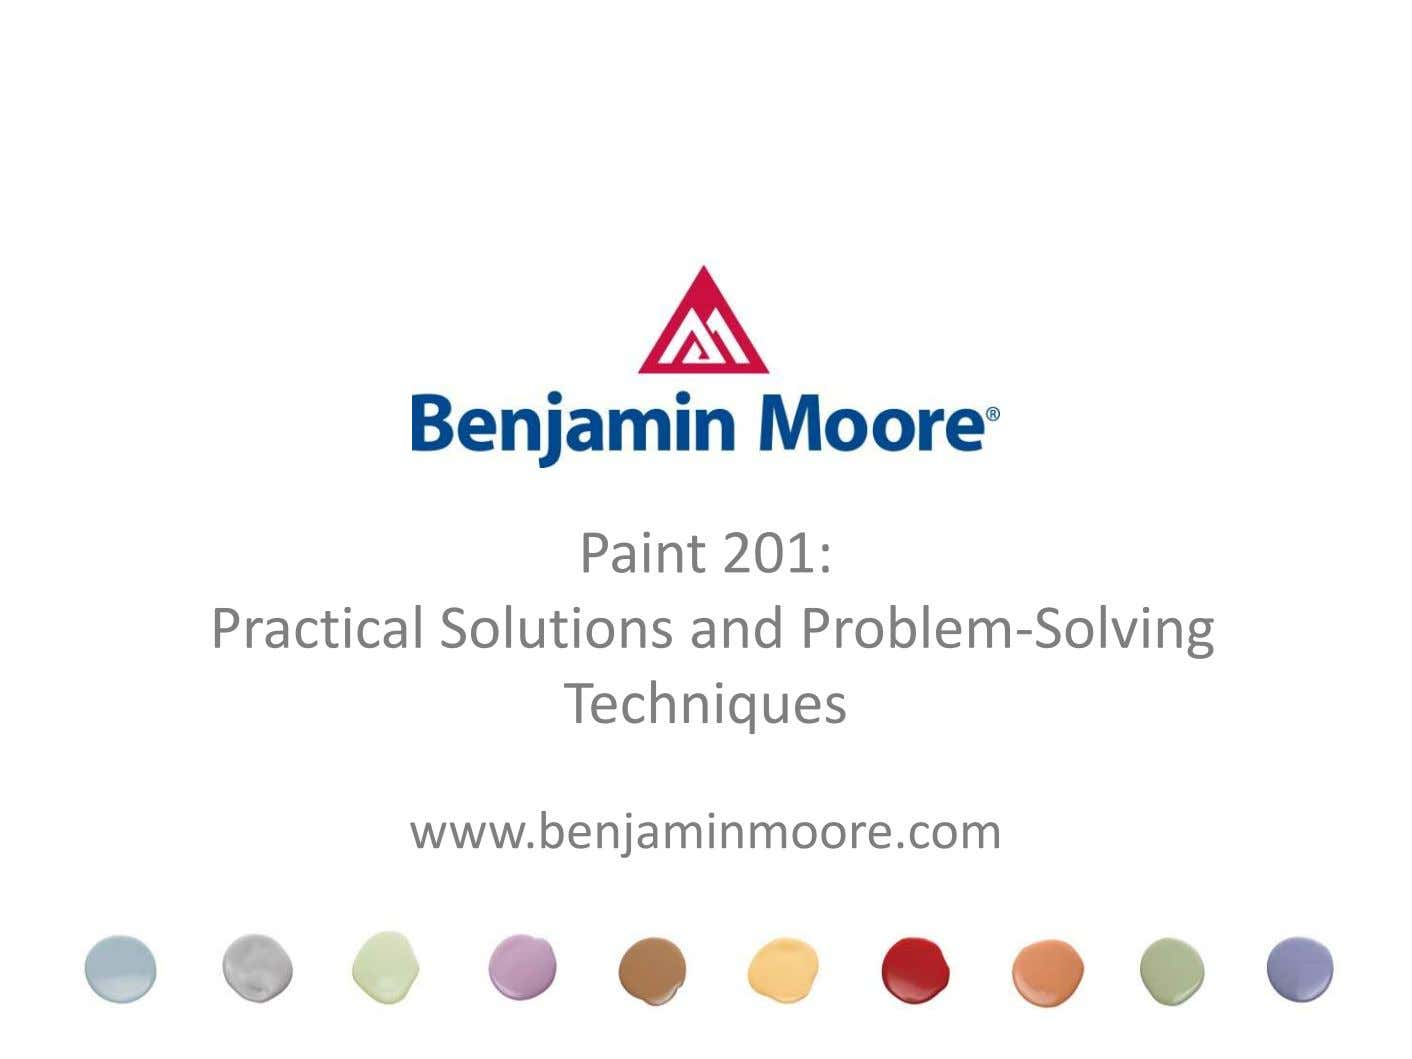 Paint 201: Practical Solutions and Problem-Solving Techniques www.benjaminmoore.com